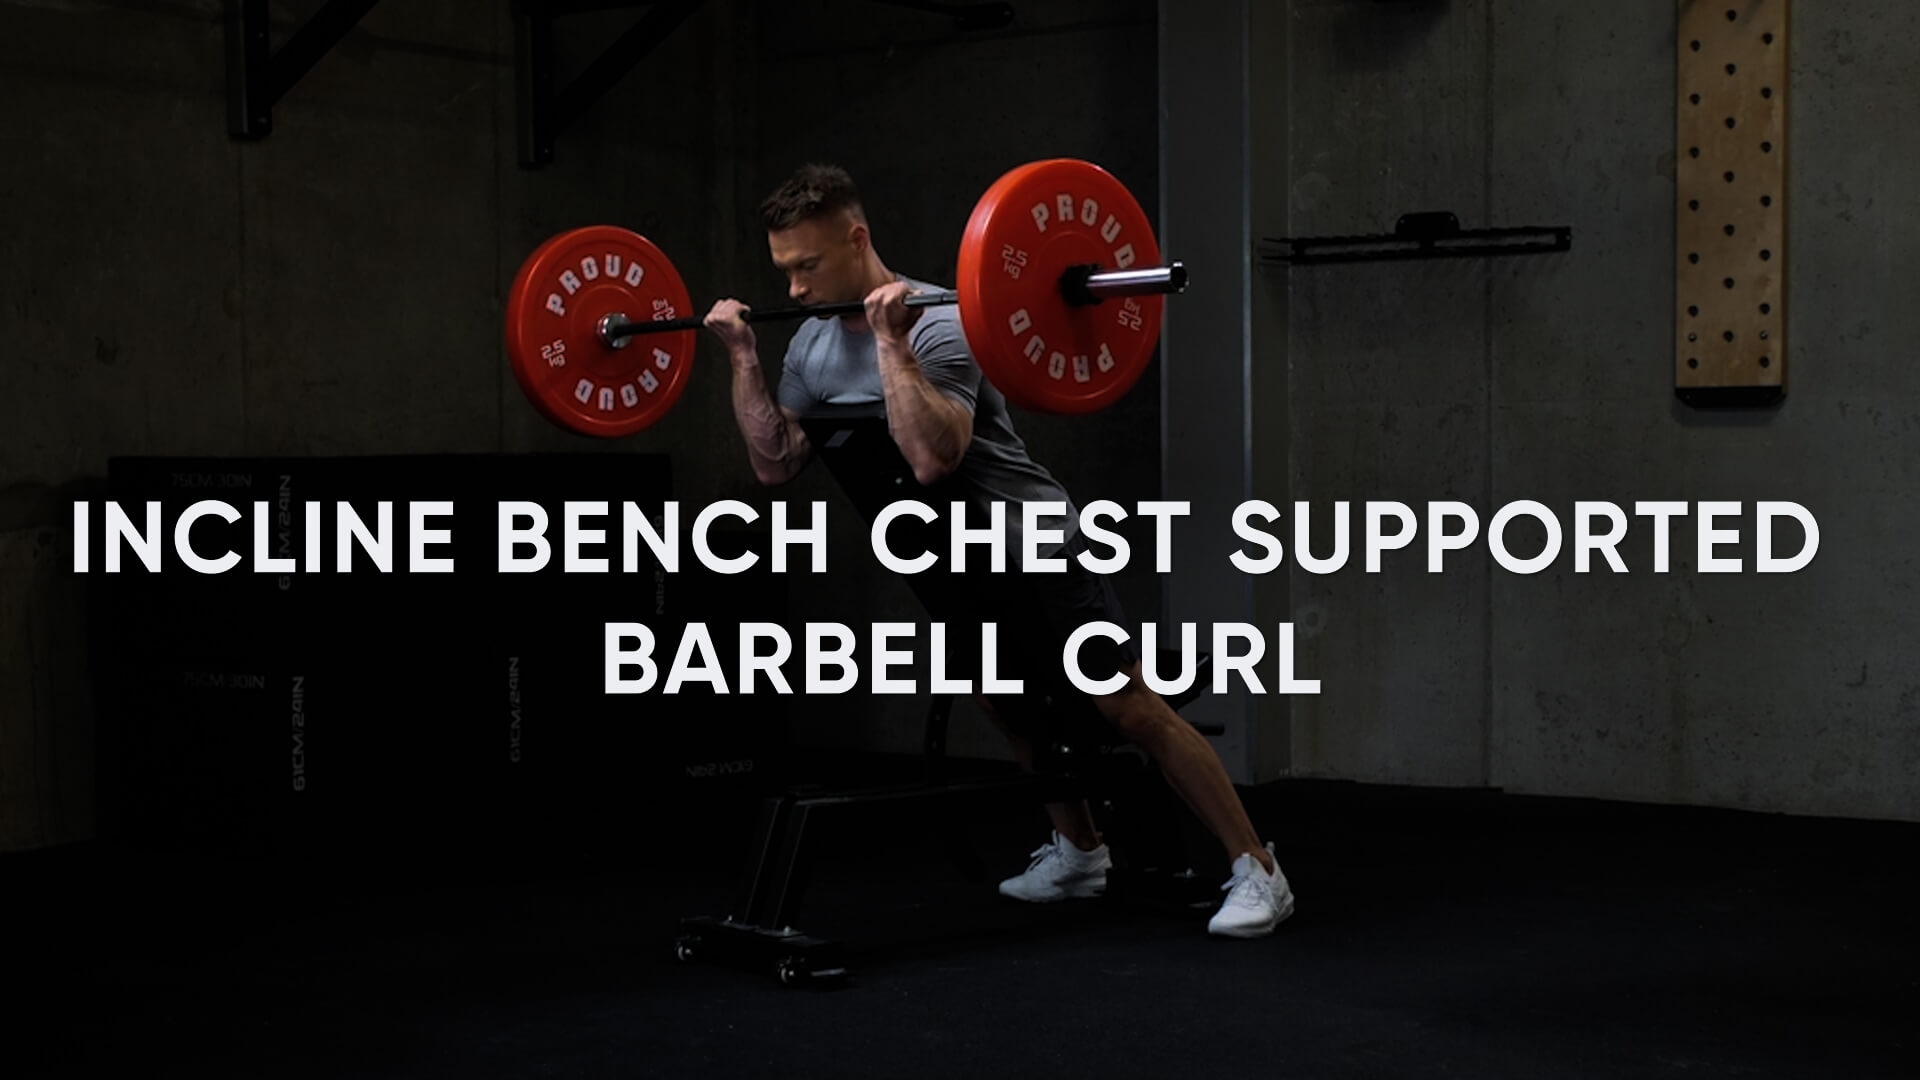 Incline Bench Chest Supported Barbell Curl